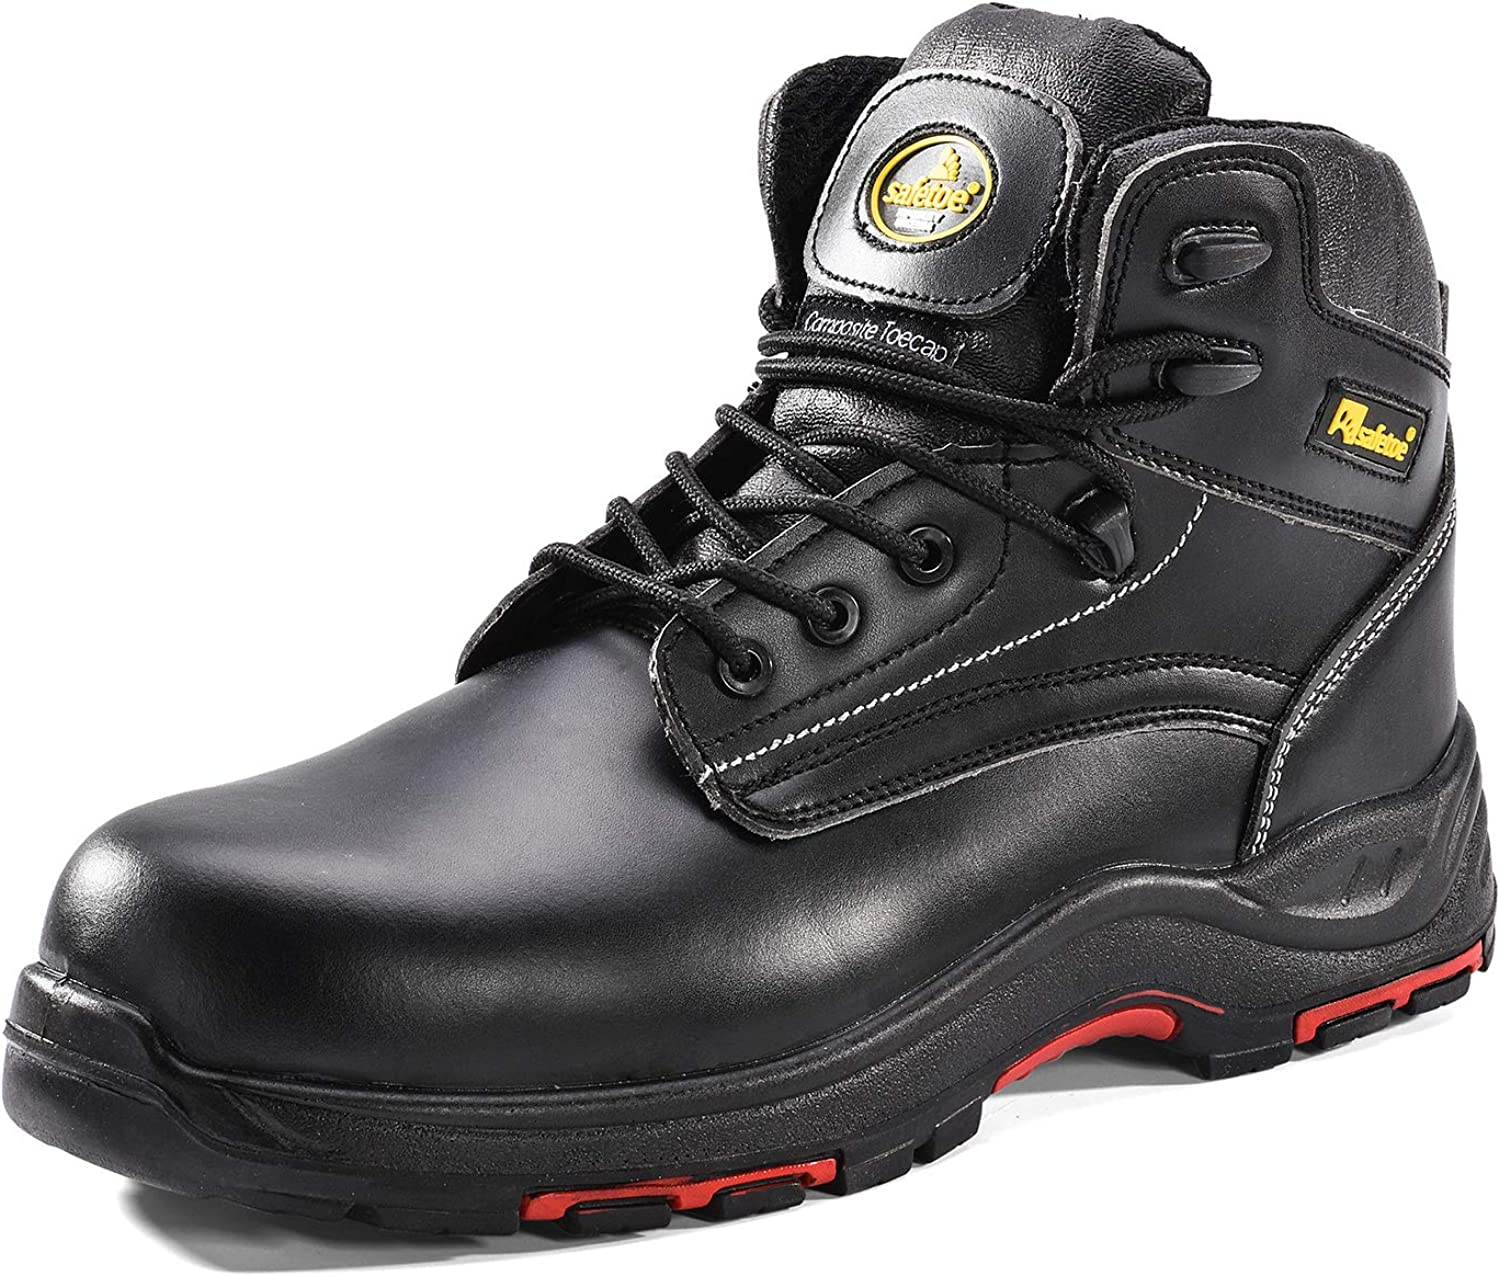 SAFEYEAR Waterproof S3 Safety Boots